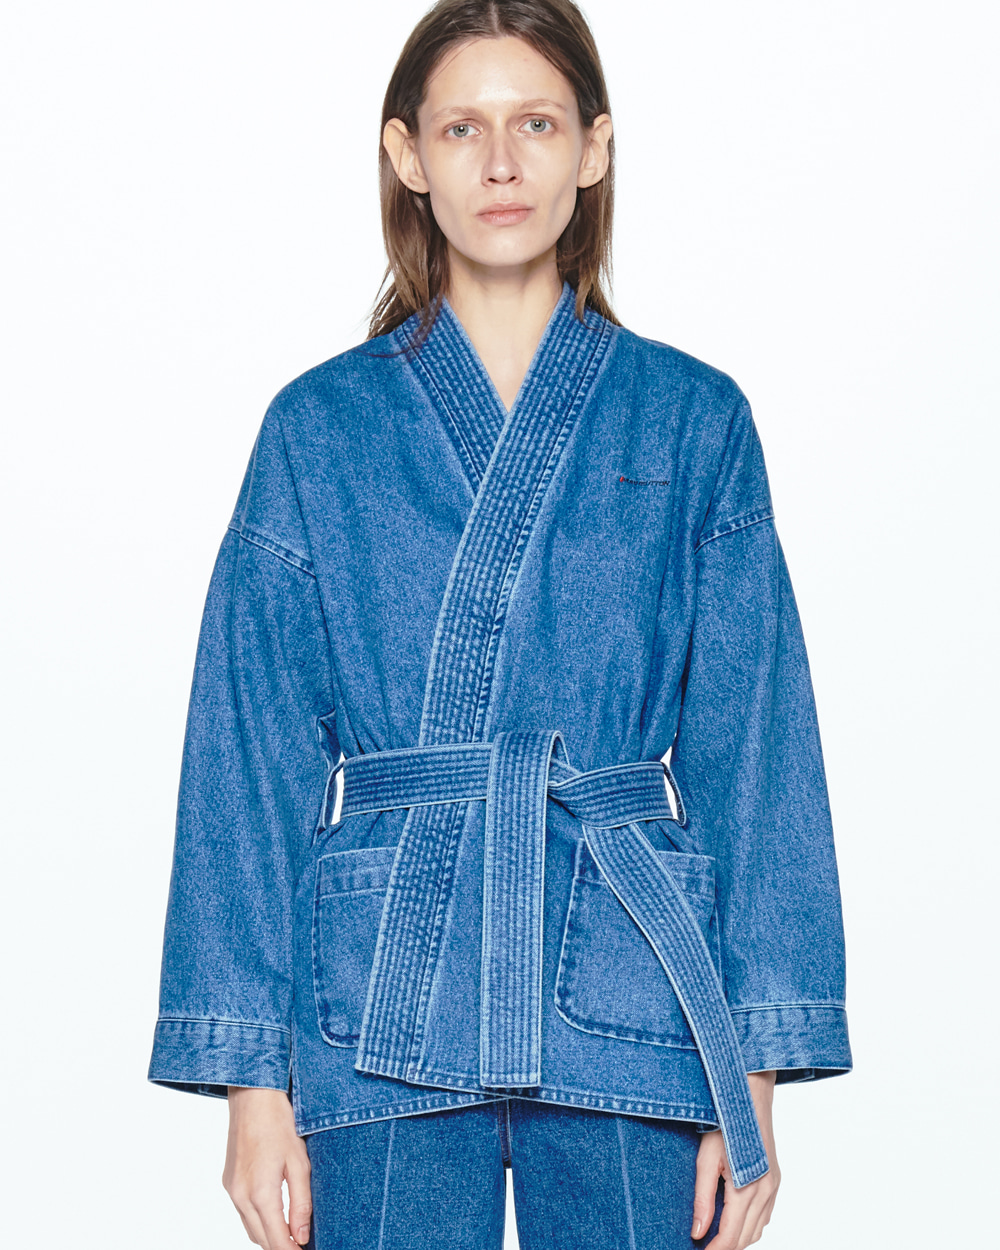 PF20 WRAP-OVER BELTED DENIM JACKET